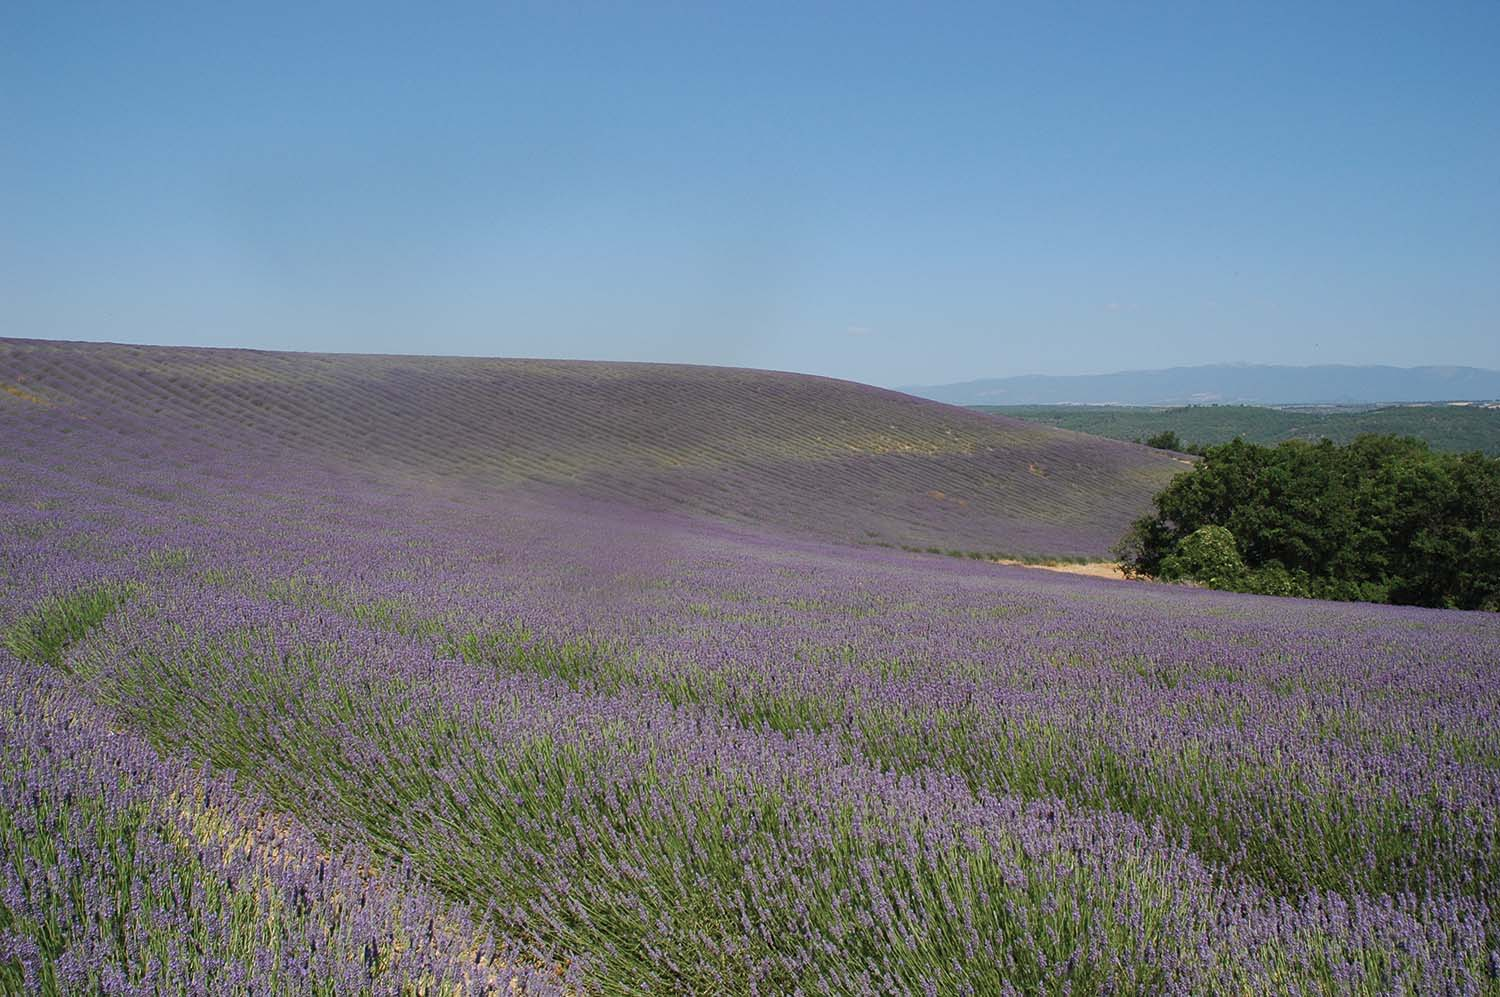 Lavender fields surrounding the National Bee Lab at Avignon, France. (Photo by Marion Ellis)